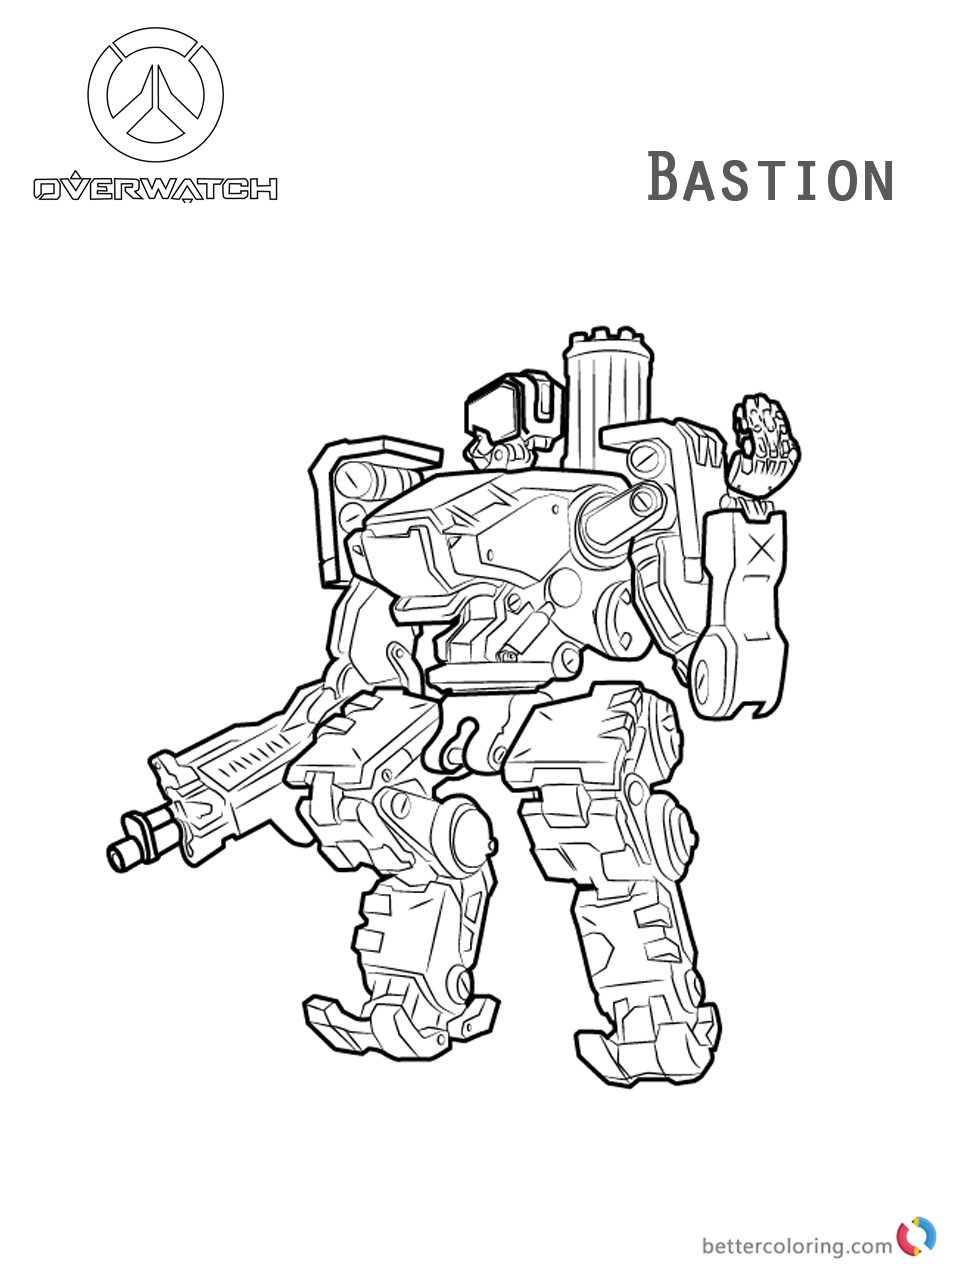 Bastion from Overwatch coloring pages printable